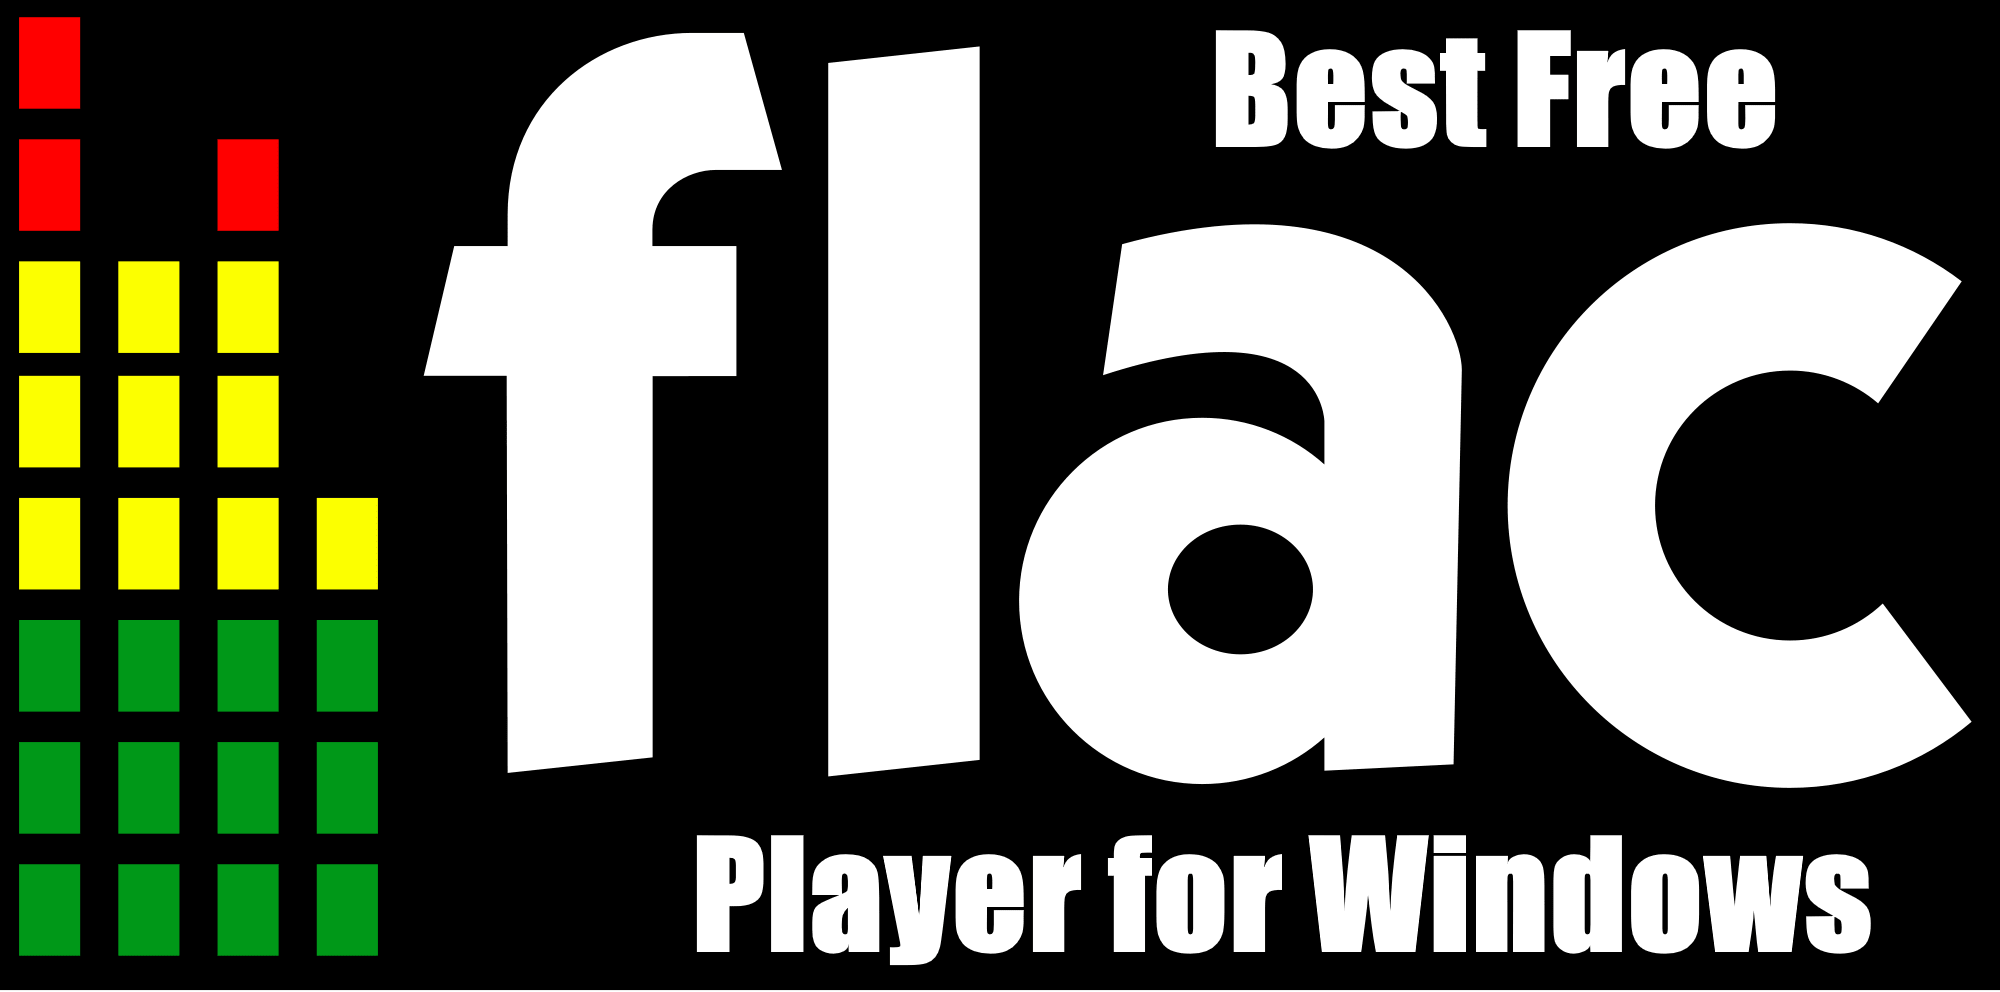 Top 30 flac player for windows/mac/ios/android.